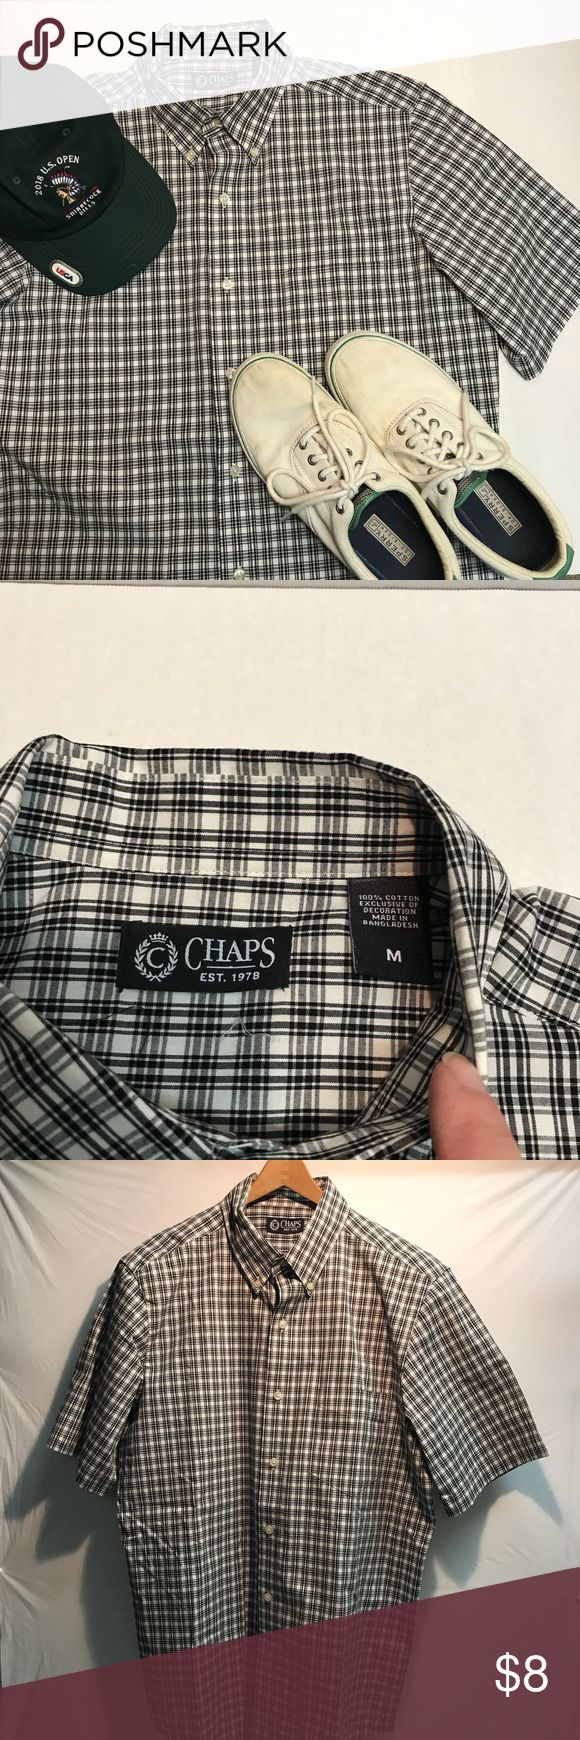 """Chaps Short Sleeve Button Down Shirt Chaps Short Sleeve Button Down Shirt in black and white plaid. 100% cotton. Measures 23"""" across underarms and 33"""" long. Excellent used condition. Chaps Shirts Casual Button Down Shirts"""